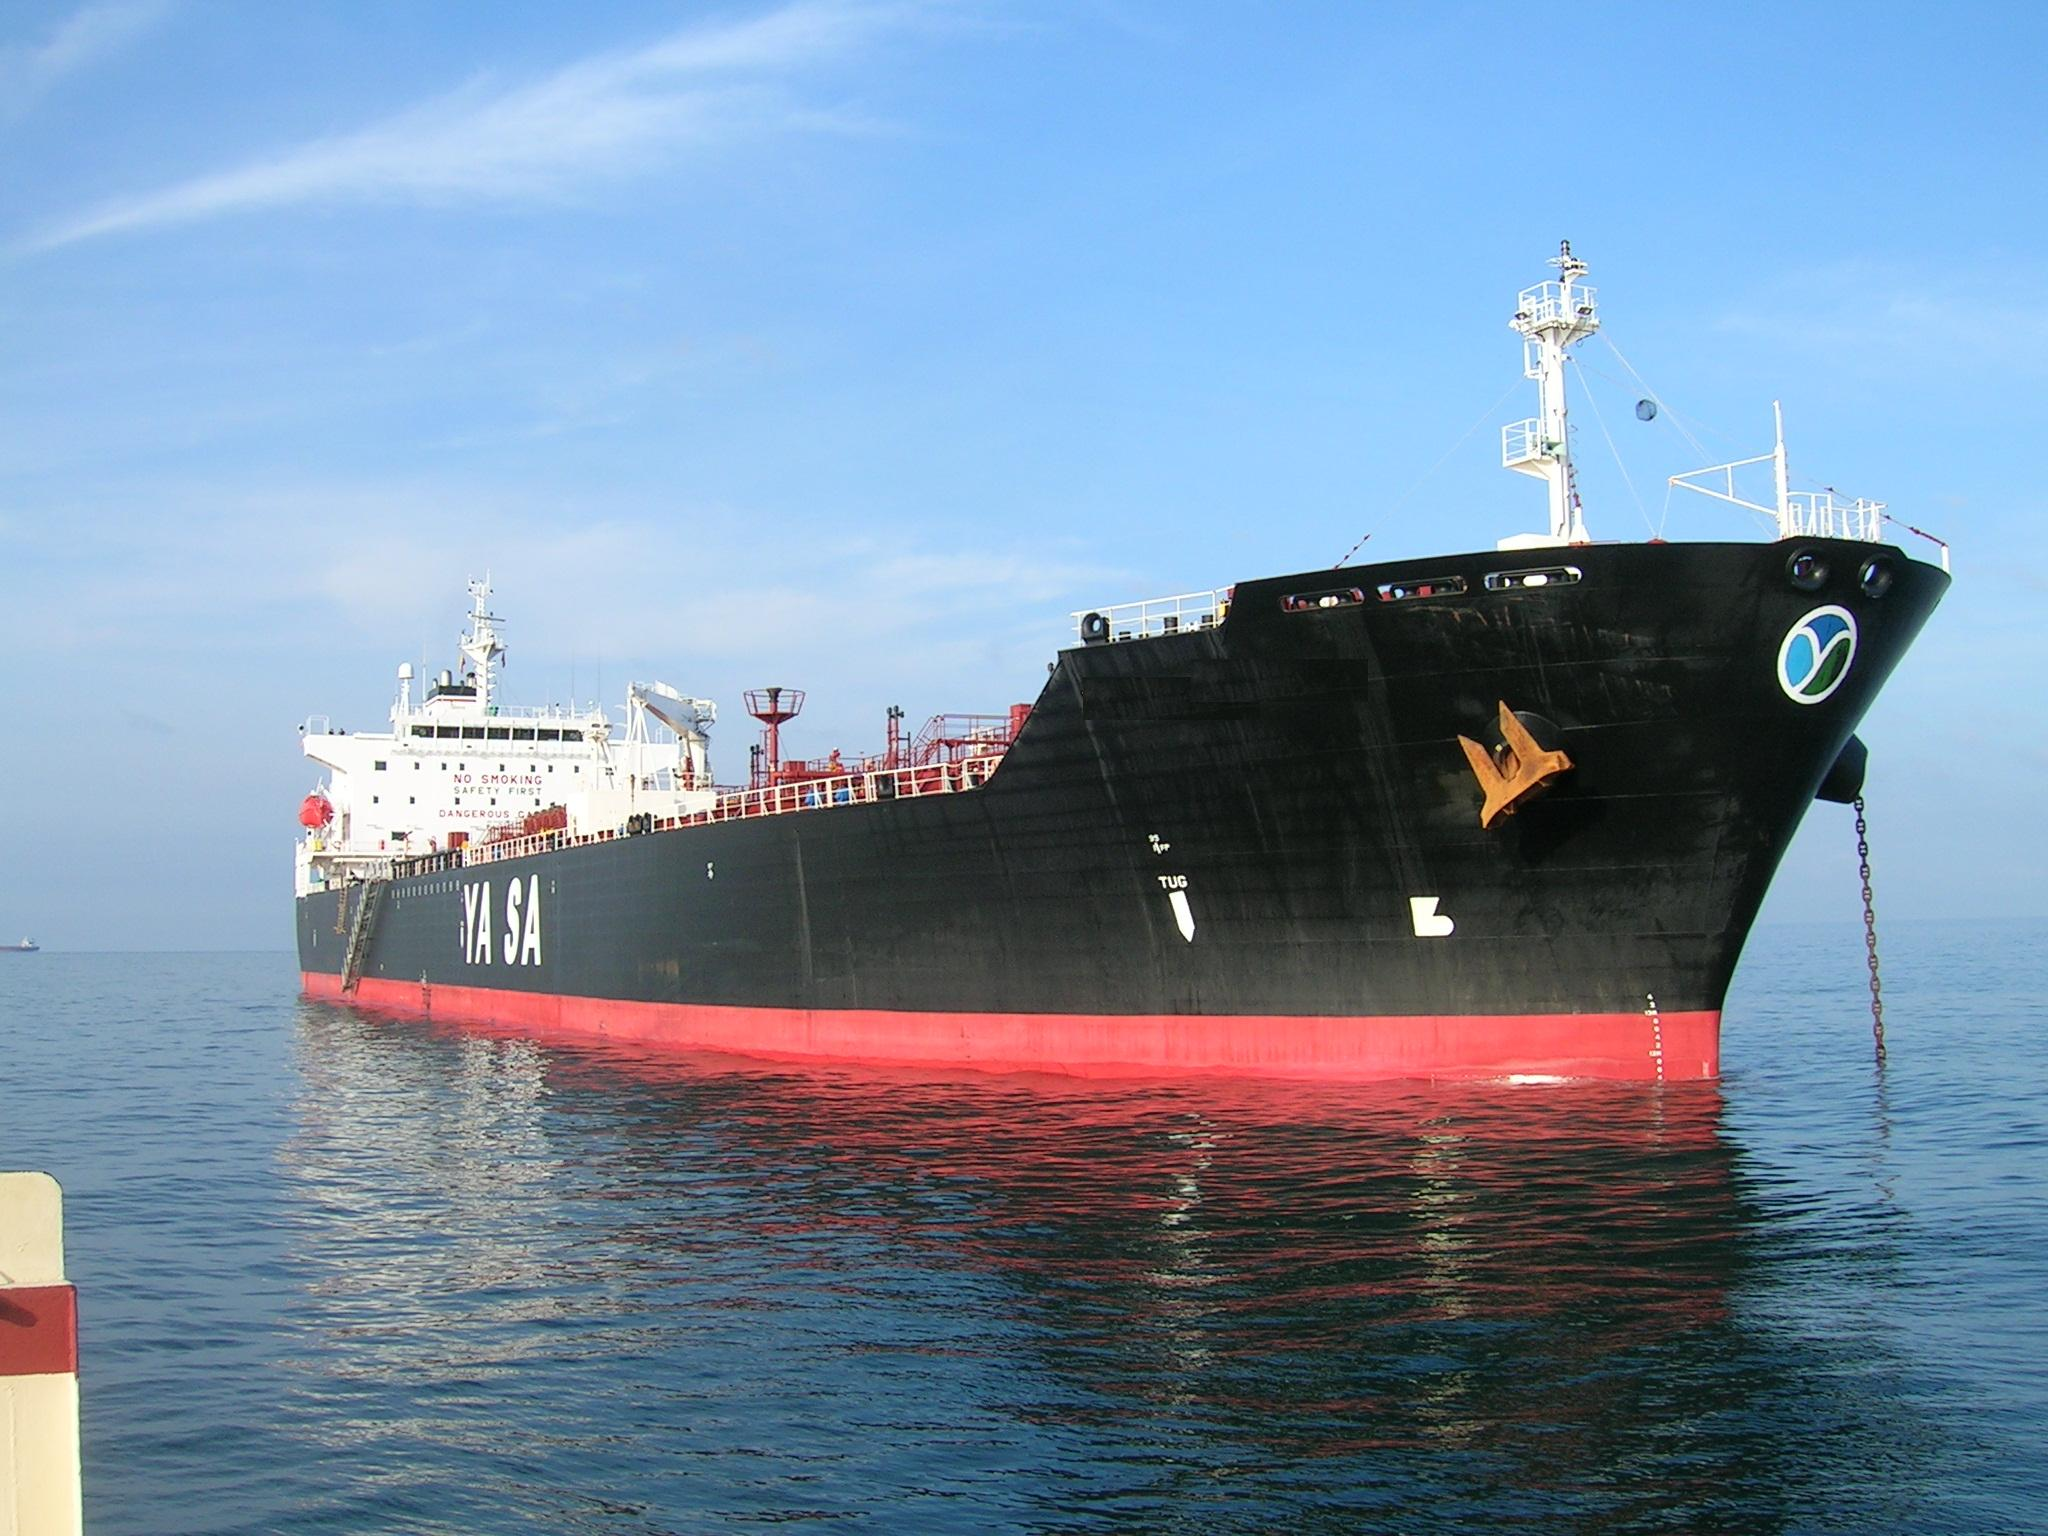 Japan's oil tanker insurance a defeat for anti-Iran sanctions